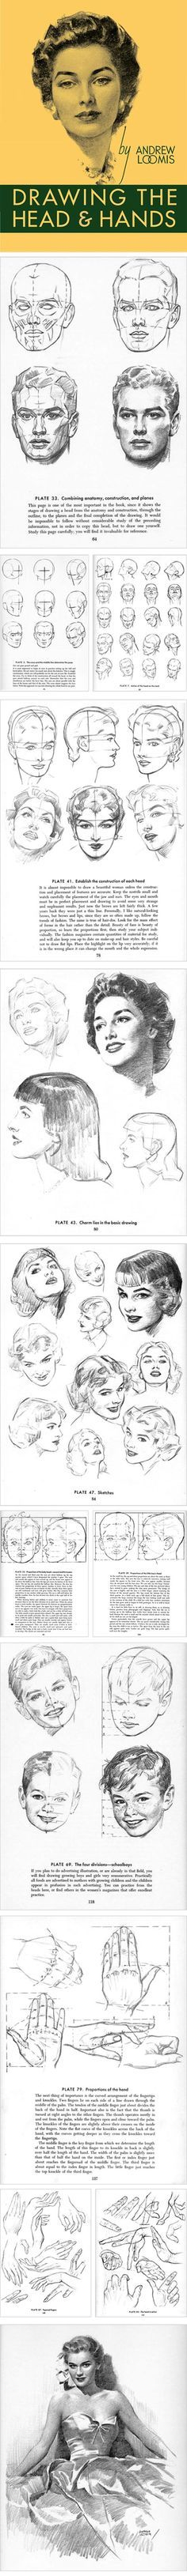 lines and colors :: a blog about drawing, painting, illustration, comics, concept art and other visual arts » Drawing the Head and Hands, Andrew Loomis